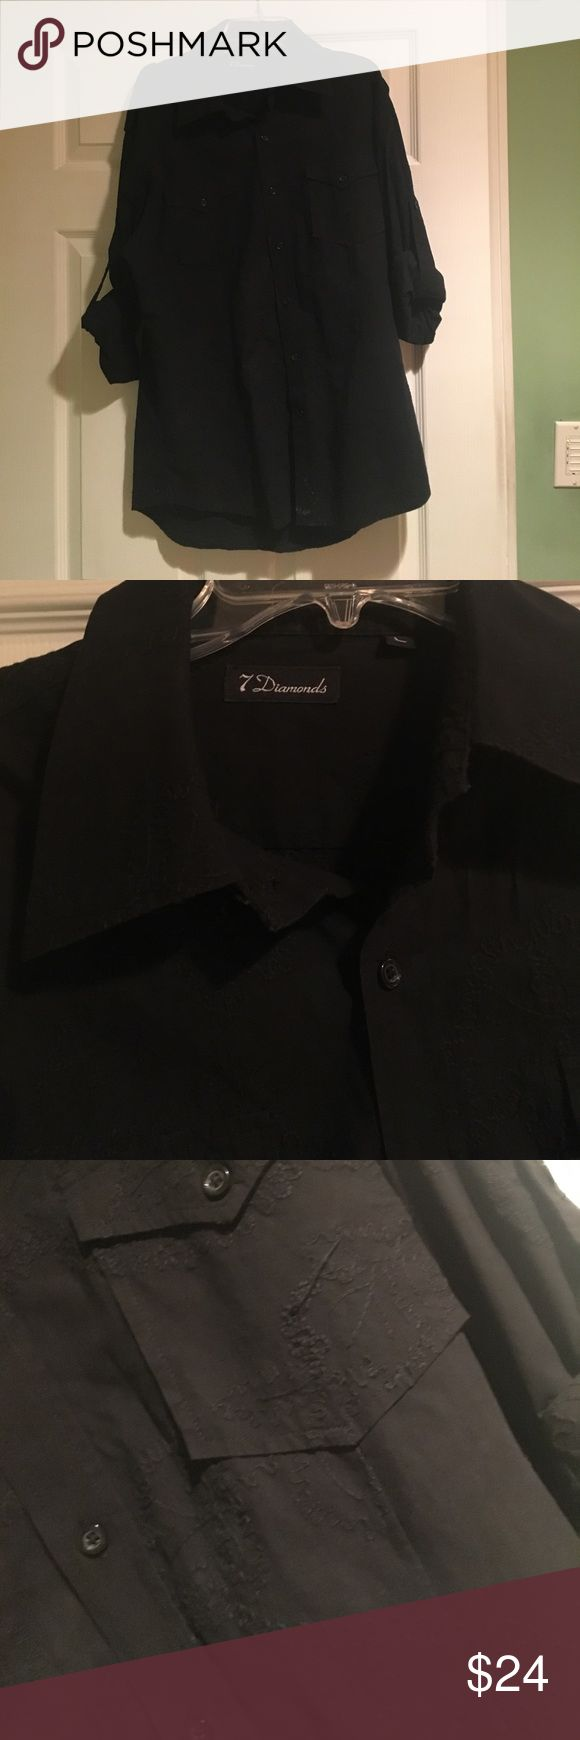 Shirt by 7 Diamonds Shirt barely used in a very good condition 7 Diamonds Shirts Casual Button Down Shirts